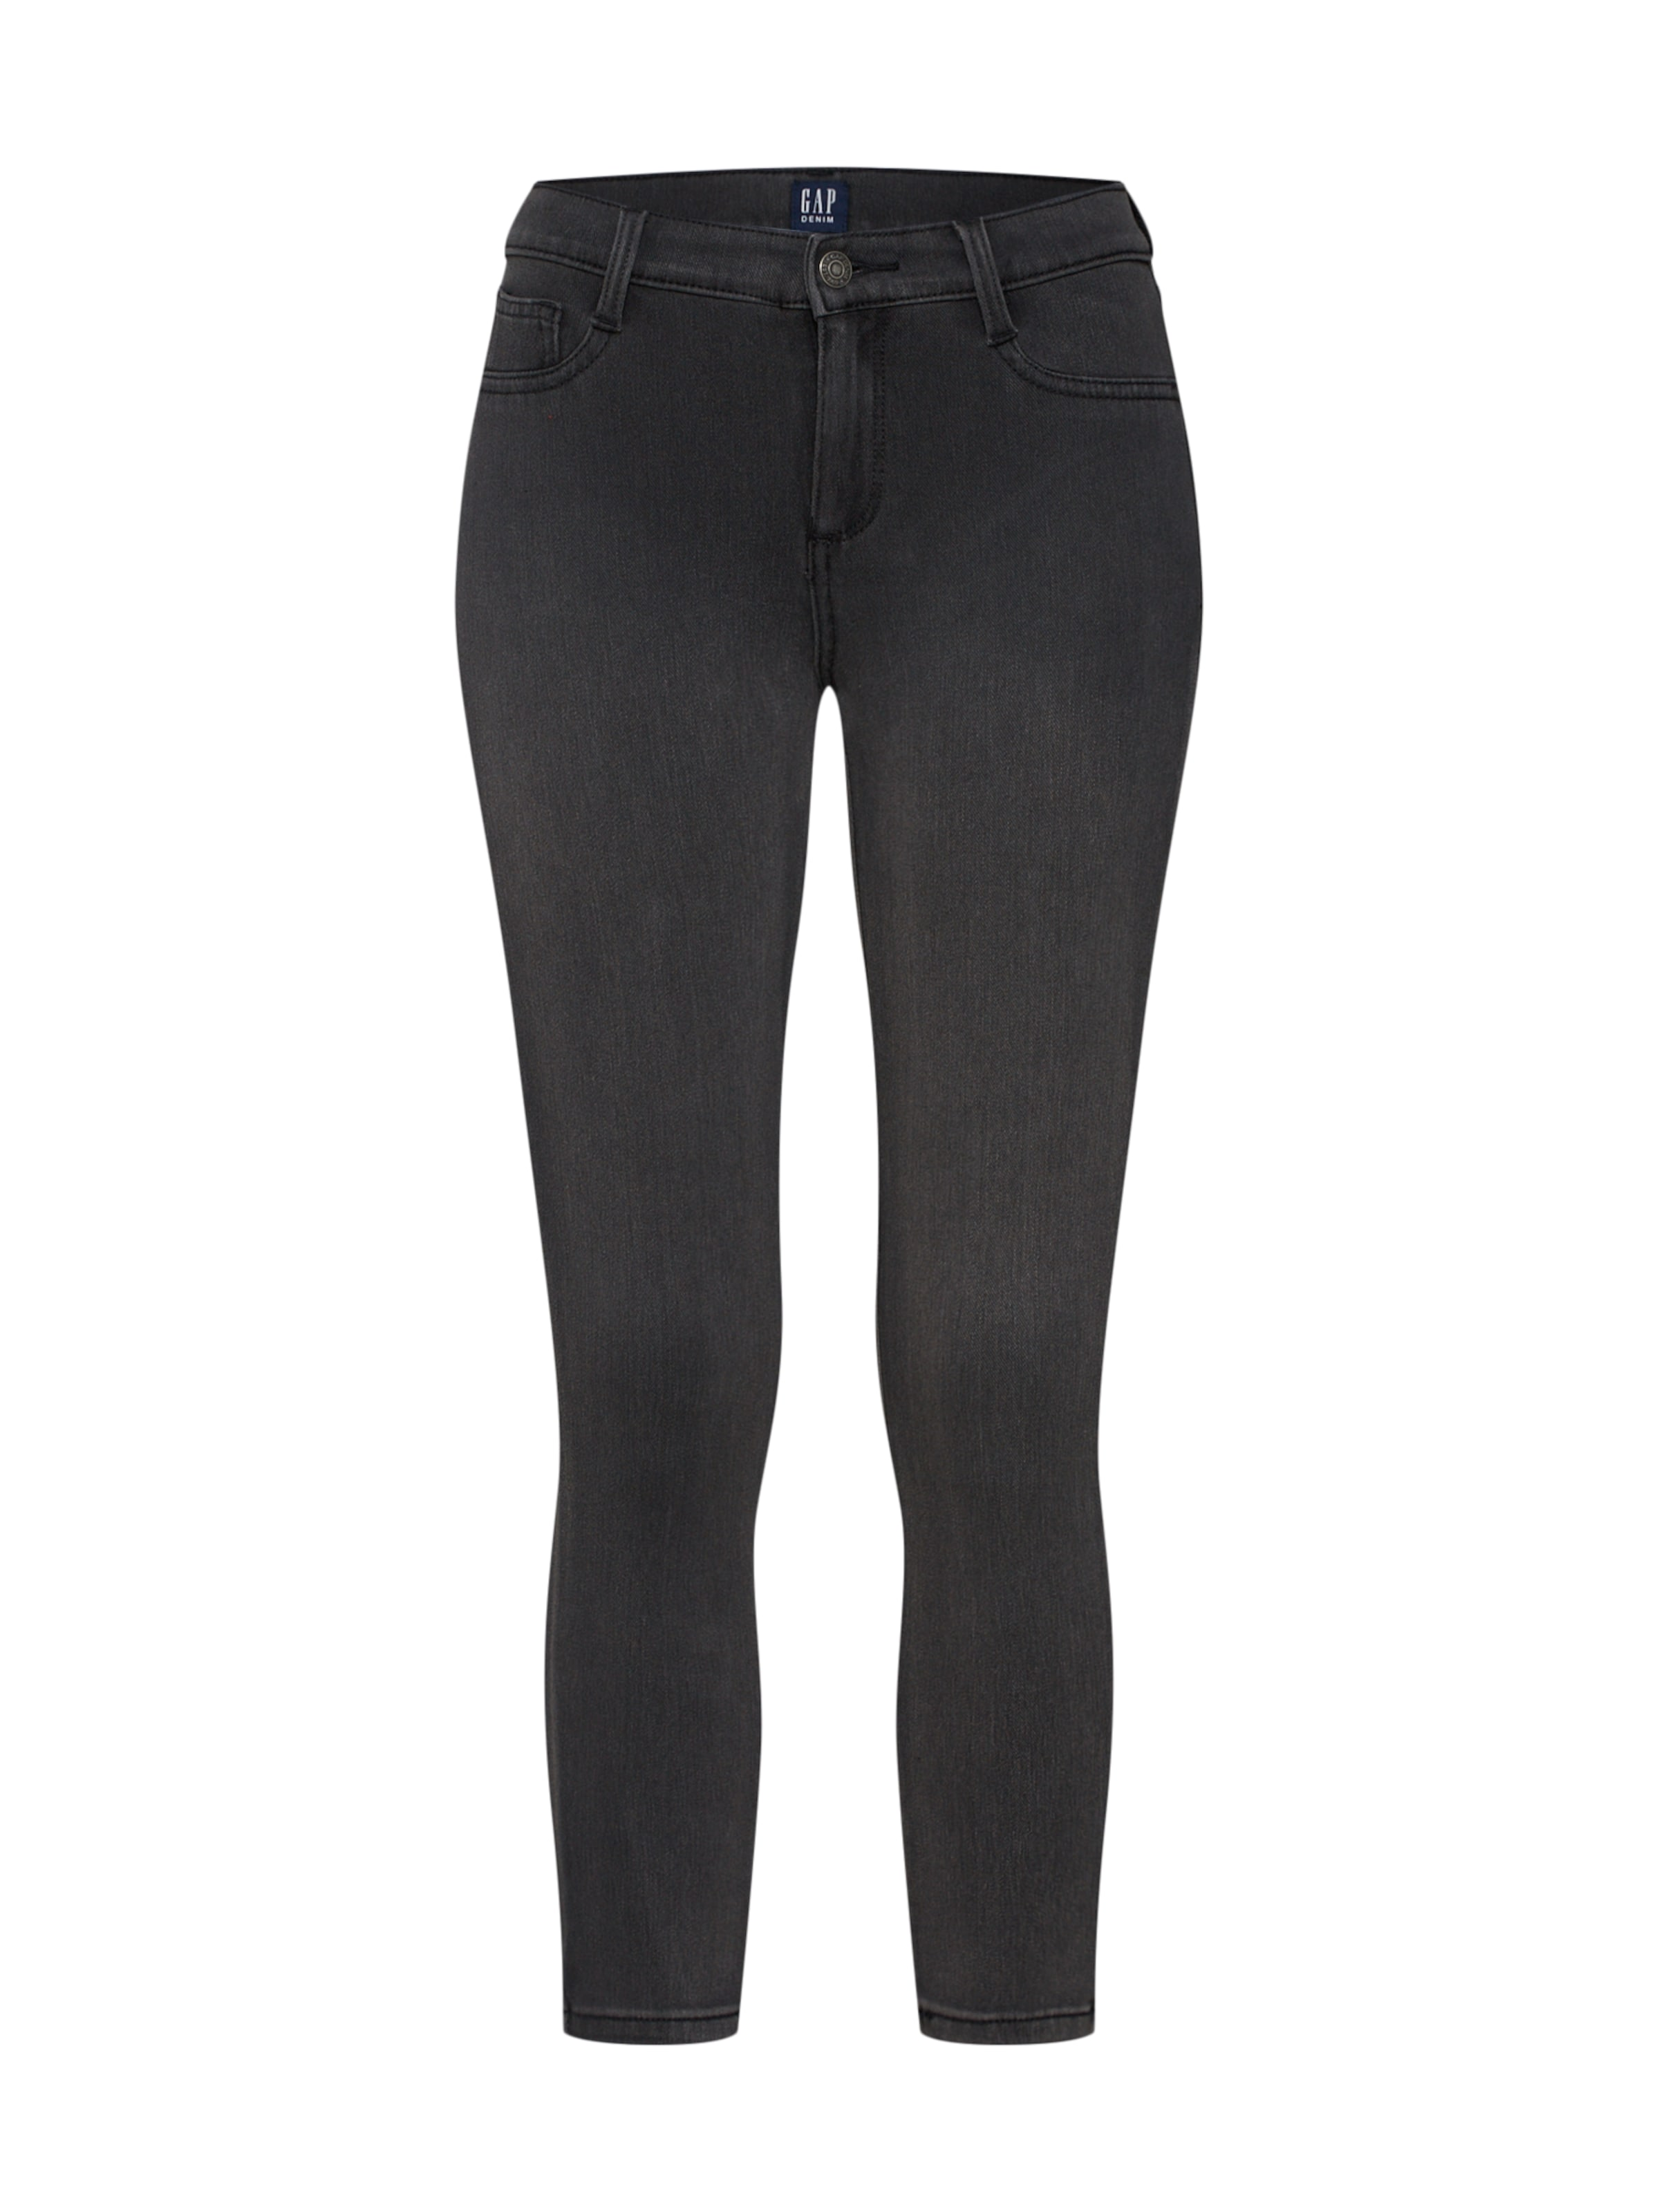 In Jegging In Schwarz Jegging Gap Jegging Jegging Gap Schwarz Schwarz Gap In Gap wPONk8Xn0Z